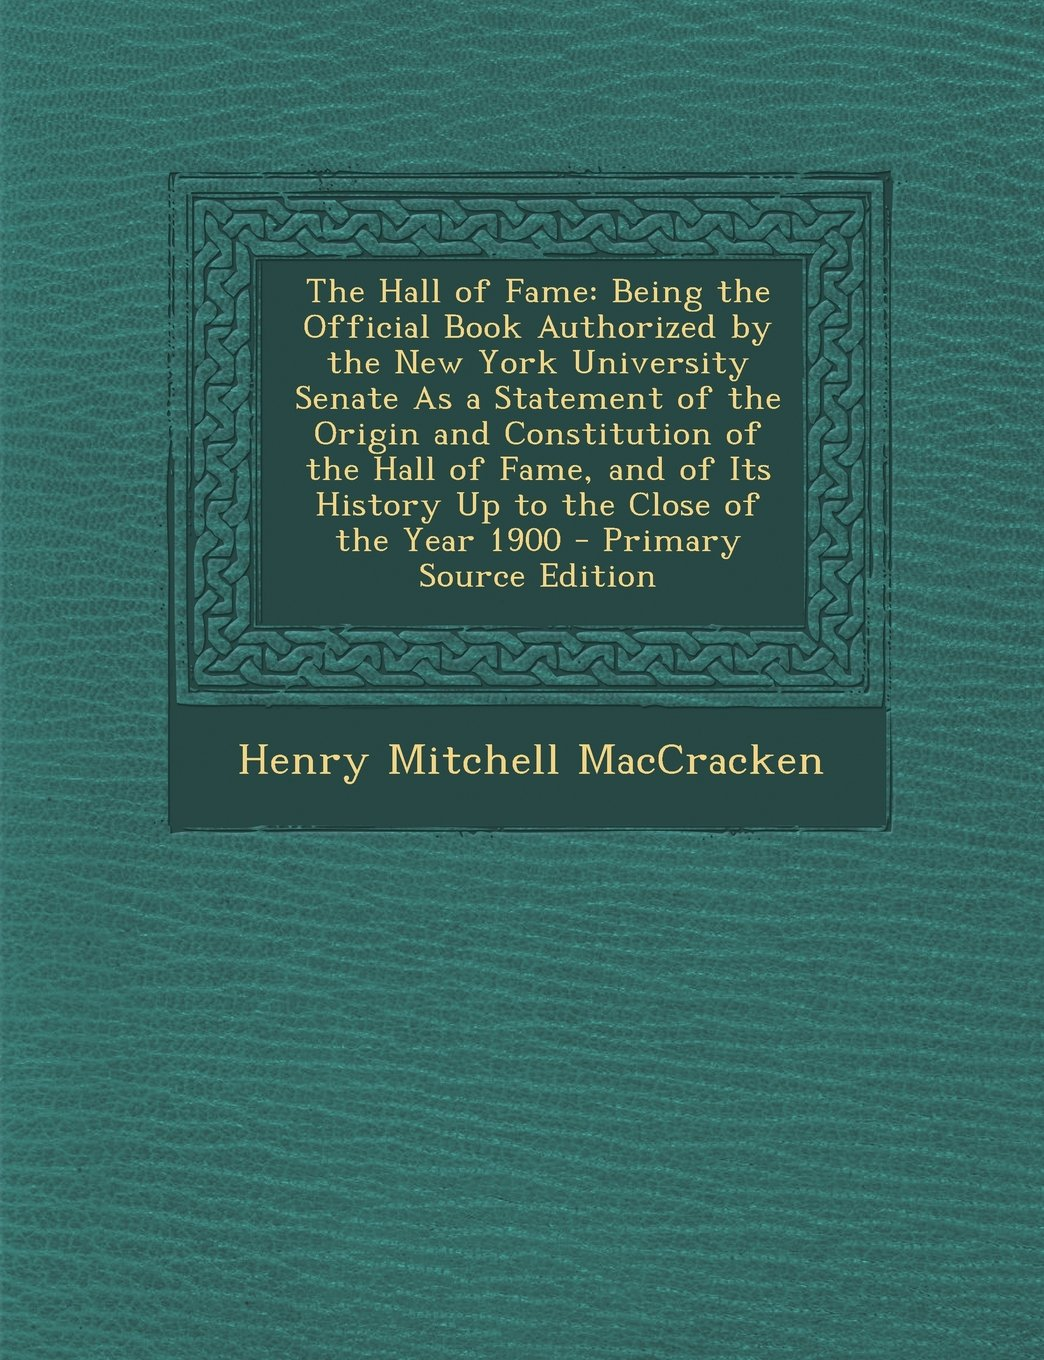 The Hall of Fame: Being the Official Book Authorized by the New York University Senate as a Statement of the Origin and Constitution of pdf